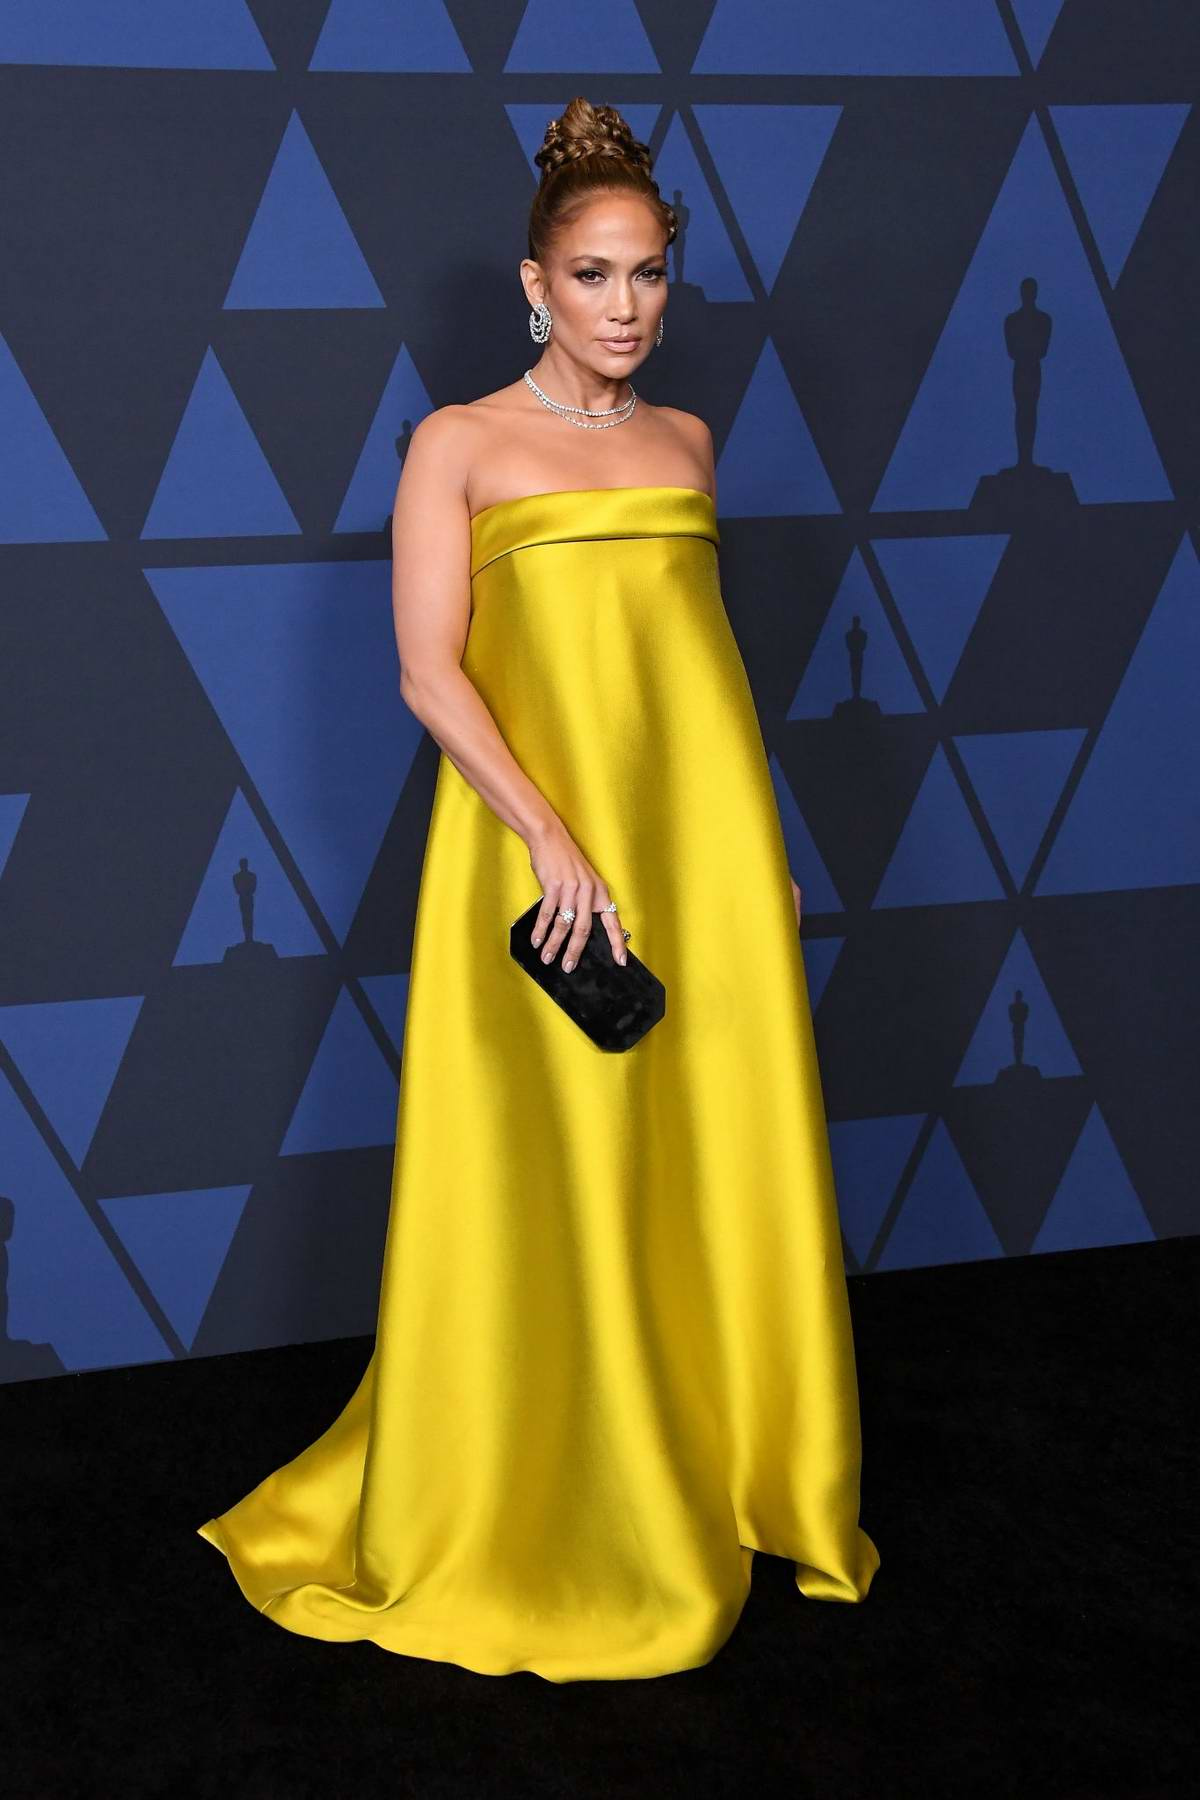 Jennifer Lopez attends the Academy of Motion Picture Arts and Sciences' 11th Annual Governors Awards in Hollywood, California